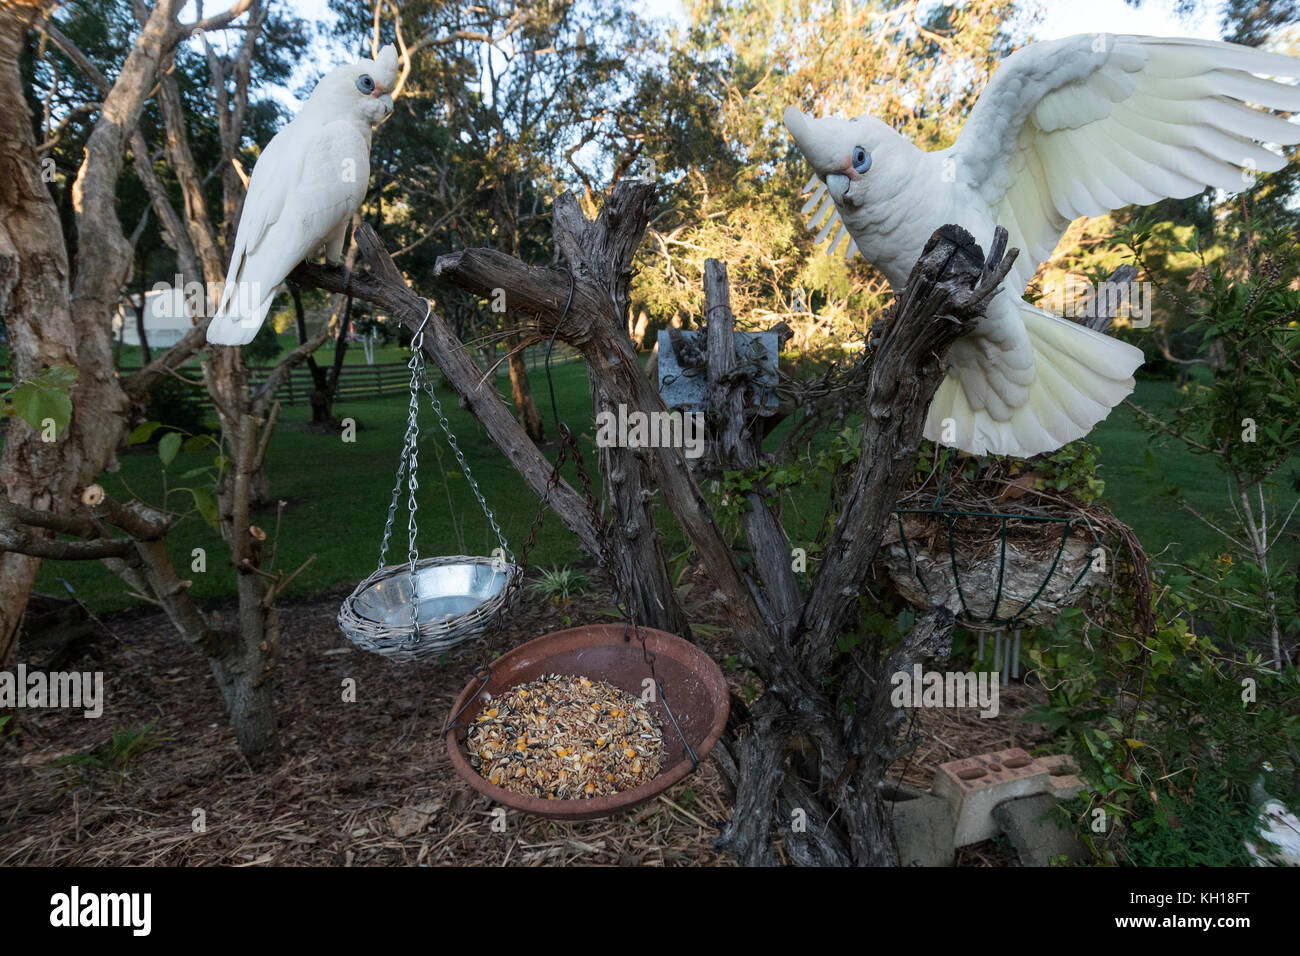 A pair of  Little Corellas on a tree stump in a residential garden on the Sunshine Coast, Queensland, Australia - Stock Image